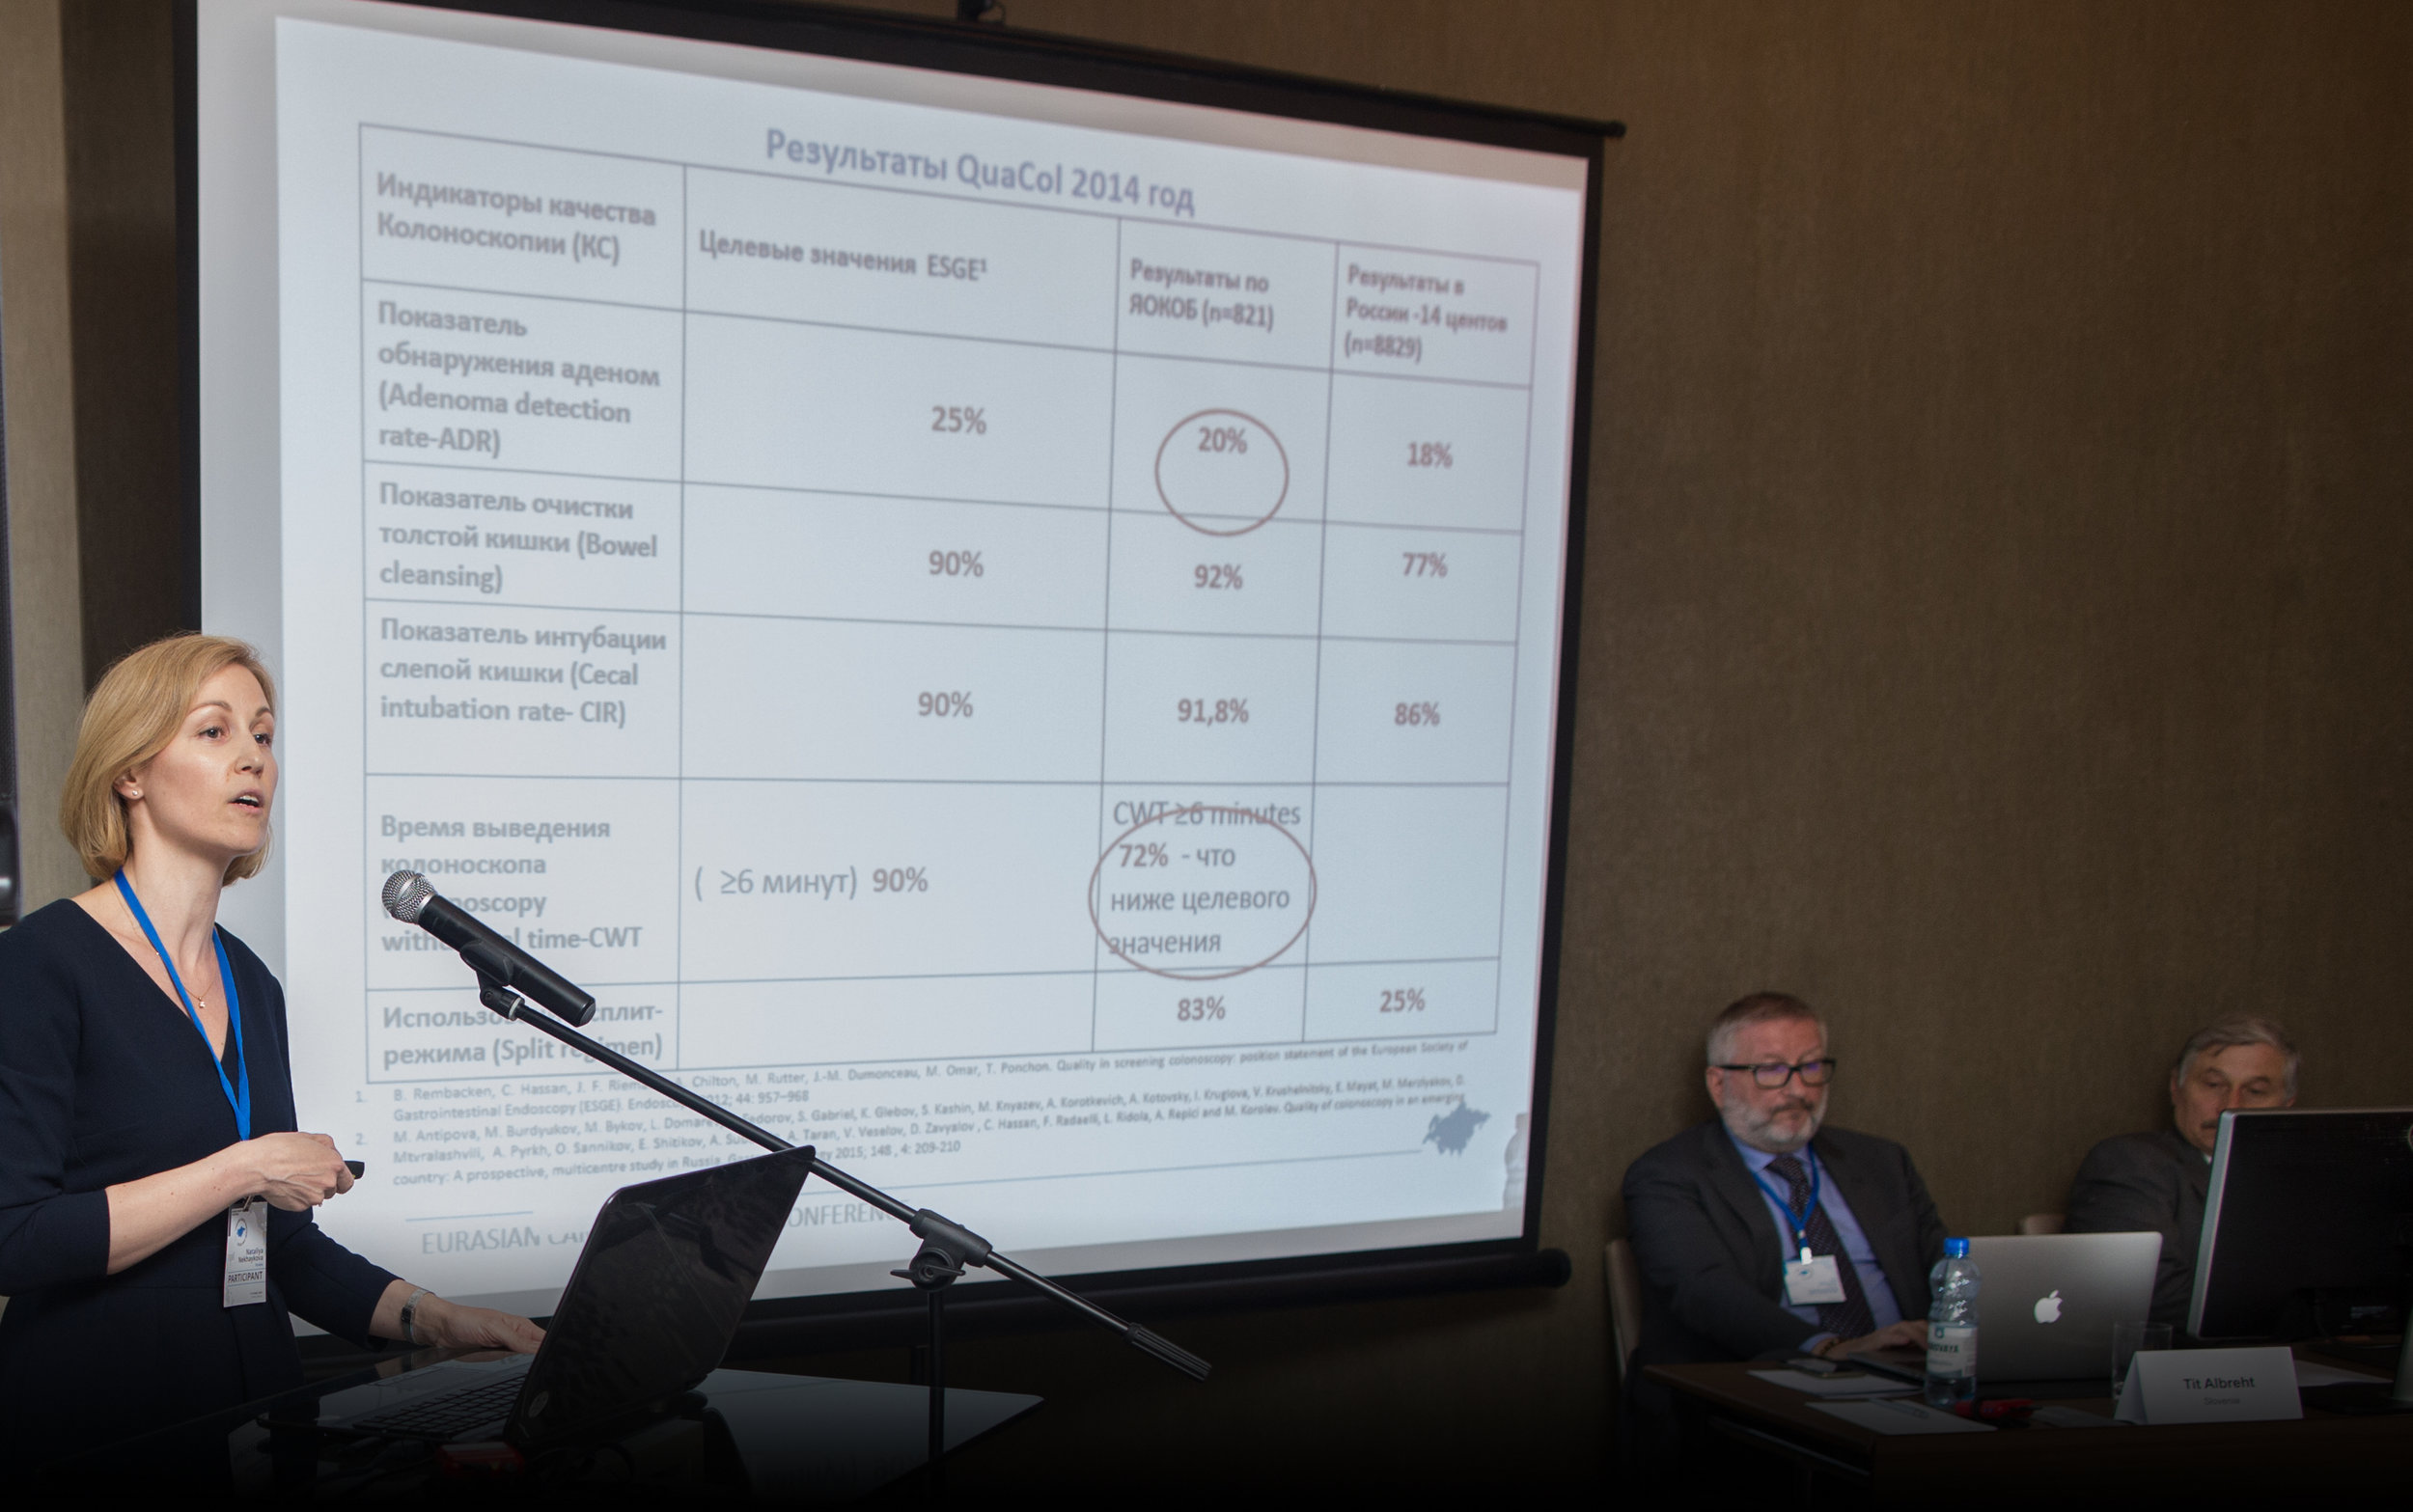 Russian colonoscopy presentation at ECSN Conference in Belarus, 2018